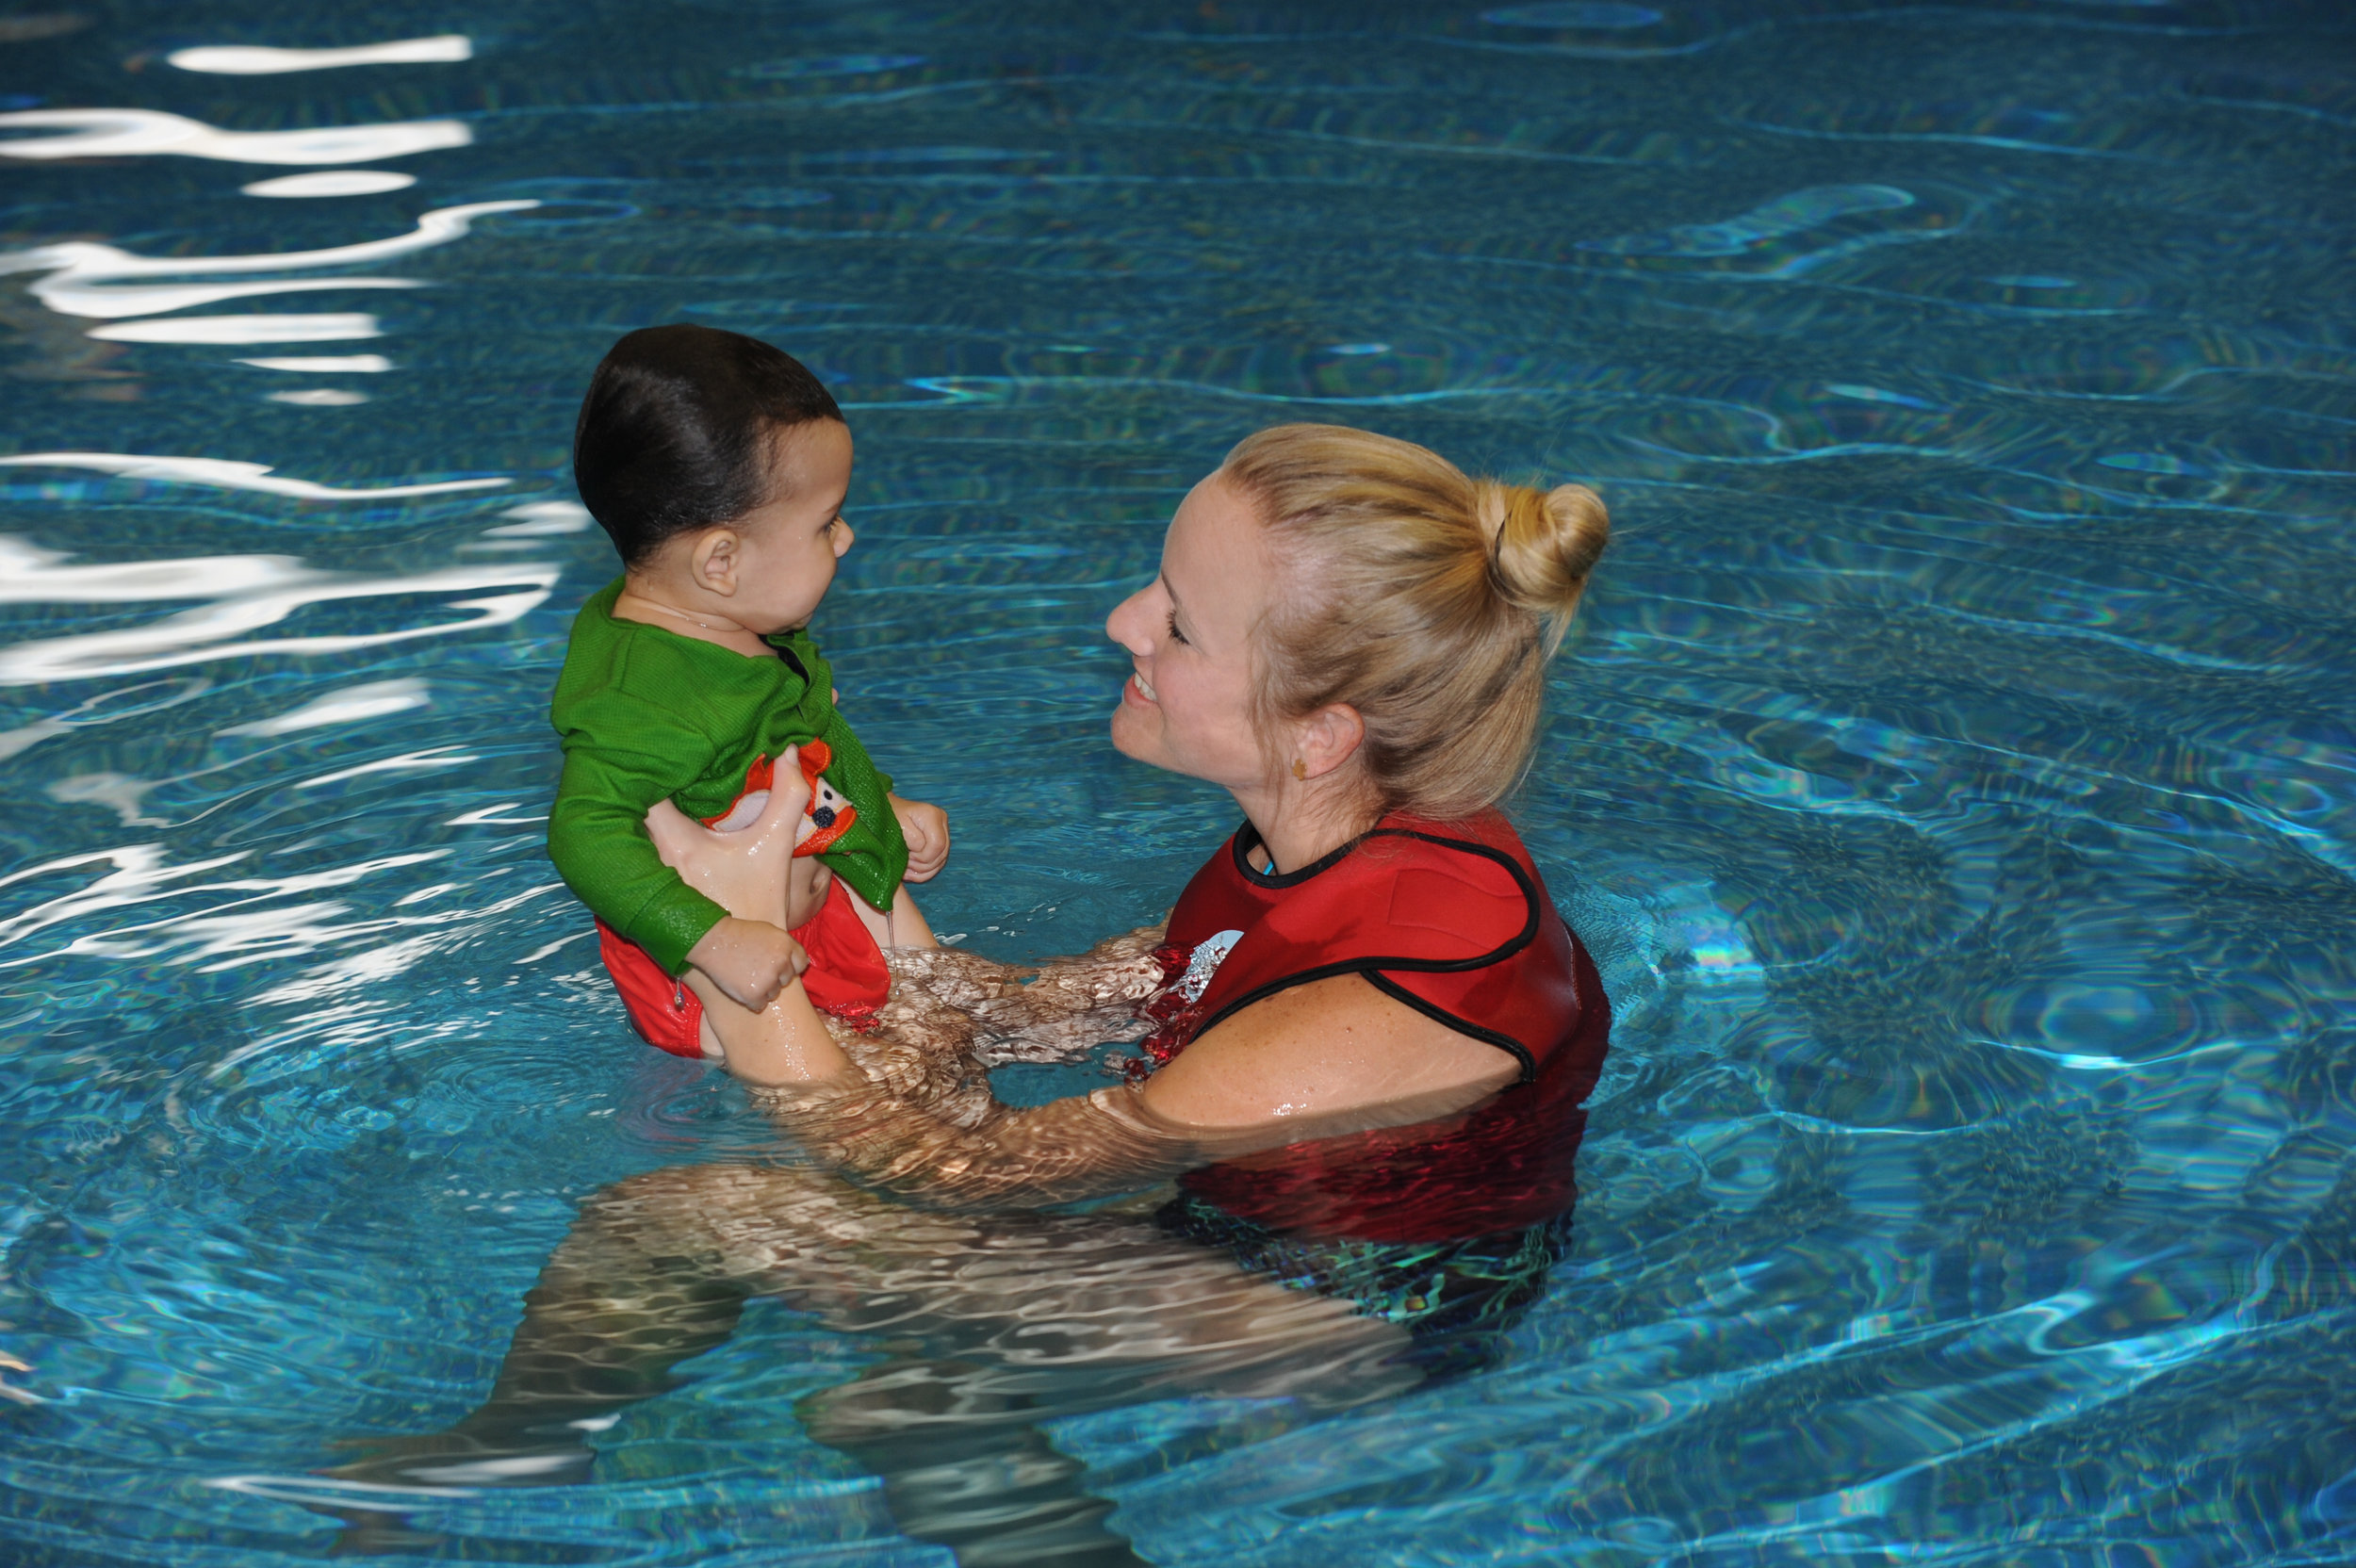 """Mrs. Krissy is amazing! She is so patient with the kids. She taught both my 19 month old and 3 year old how to swim-float-swim. We have peace of mind knowing our kids can swim. She is worth the money!"" - ~ Tina Stevens"